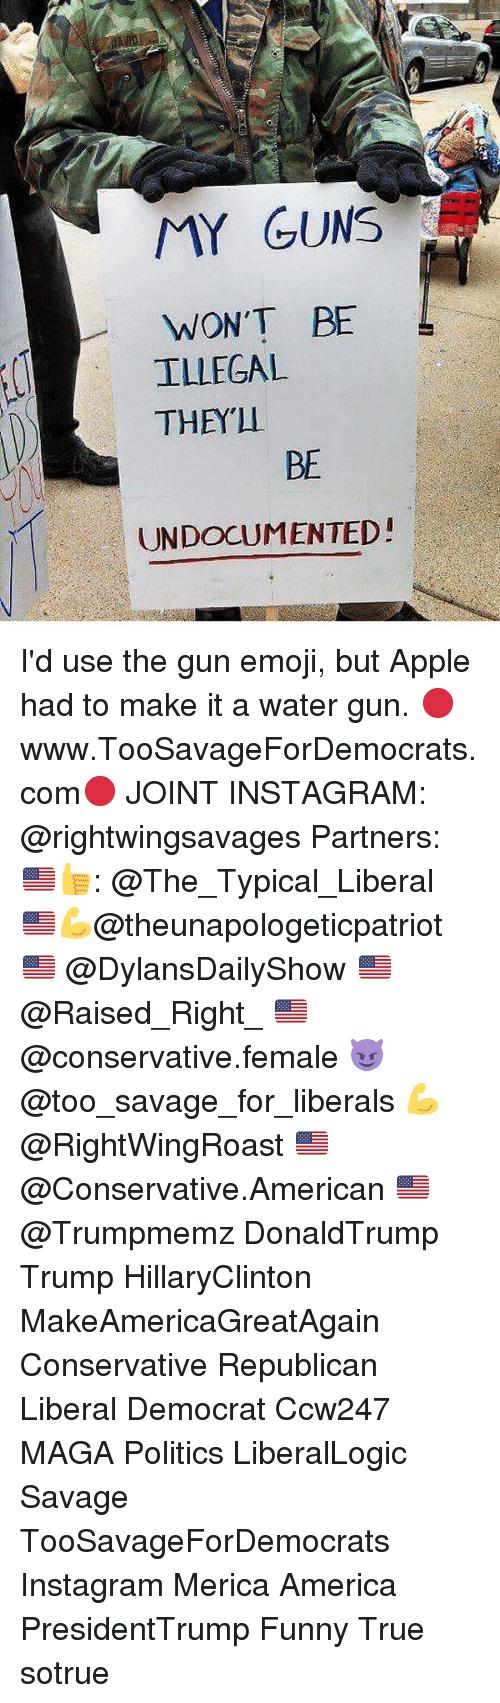 water gun: MY GUNS  WON'T BE  L  ILLEGAL  THEY  BE  UNDOCUMENTED! I'd use the gun emoji, but Apple had to make it a water gun. 🔴www.TooSavageForDemocrats.com🔴 JOINT INSTAGRAM: @rightwingsavages Partners: 🇺🇸👍: @The_Typical_Liberal 🇺🇸💪@theunapologeticpatriot 🇺🇸 @DylansDailyShow 🇺🇸@Raised_Right_ 🇺🇸@conservative.female 😈 @too_savage_for_liberals 💪 @RightWingRoast 🇺🇸 @Conservative.American 🇺🇸 @Trumpmemz DonaldTrump Trump HillaryClinton MakeAmericaGreatAgain Conservative Republican Liberal Democrat Ccw247 MAGA Politics LiberalLogic Savage TooSavageForDemocrats Instagram Merica America PresidentTrump Funny True sotrue